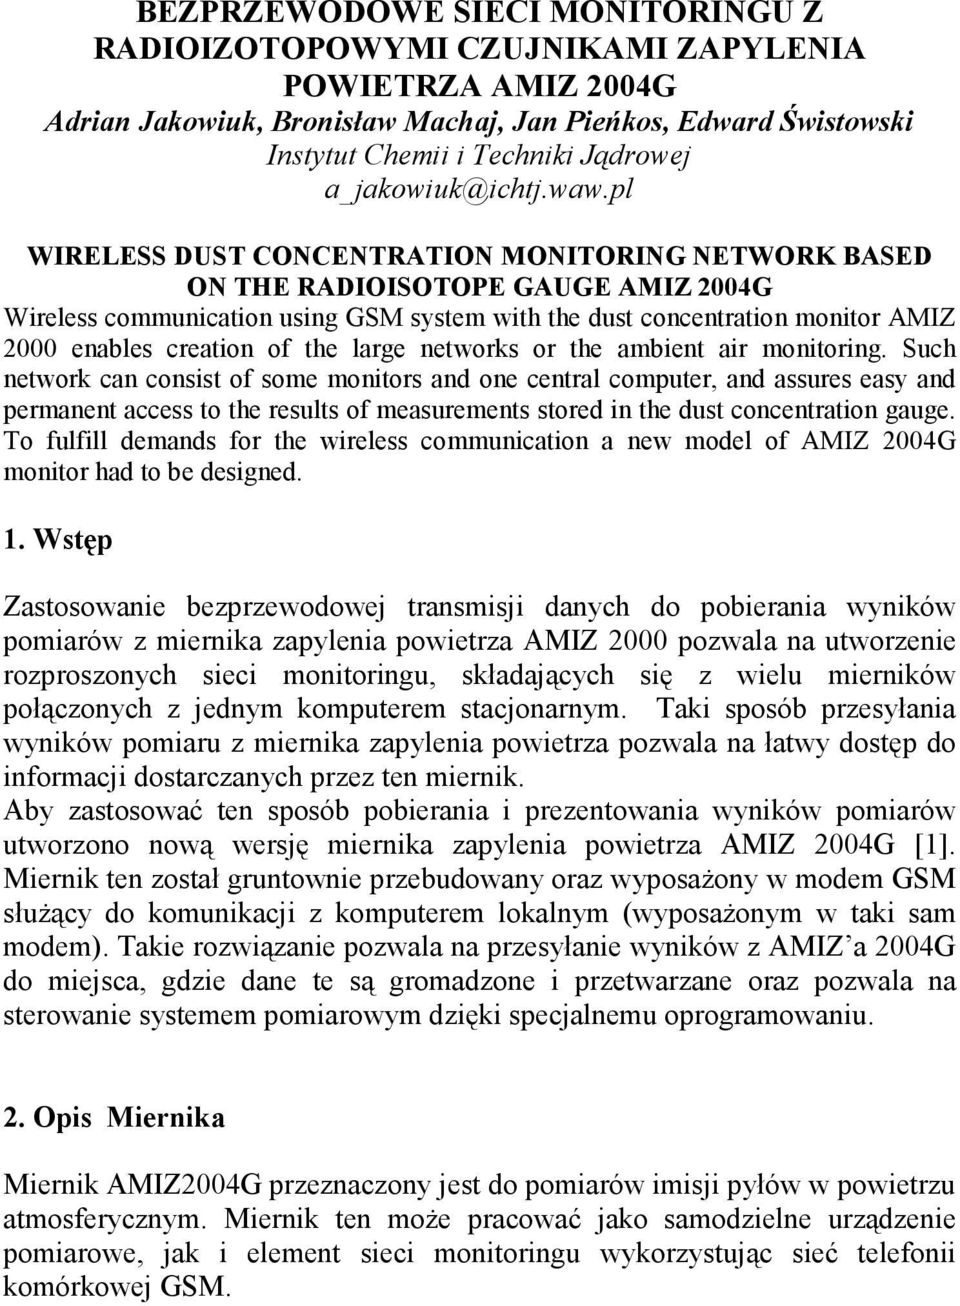 pl WIRELESS DUST CONCENTRATION MONITORING NETWORK BASED ON THE RADIOISOTOPE GAUGE AMIZ 2004G Wireless communication using GSM system with the dust concentration monitor AMIZ 2000 enables creation of